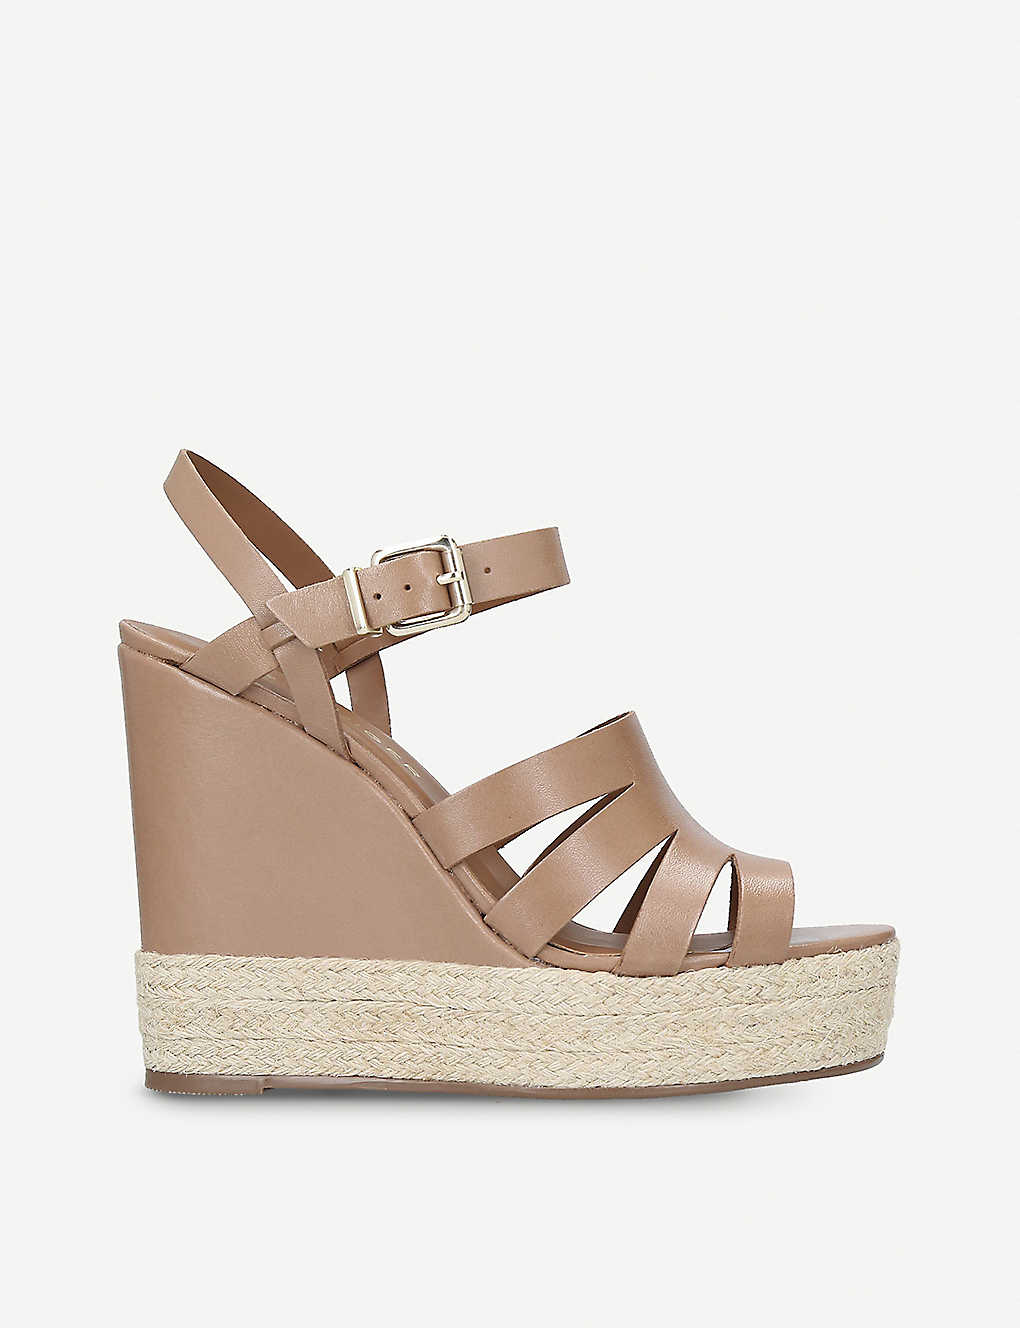 791e267a935 KURT GEIGER LONDON - Aura leather wedge sandals | Selfridges.com